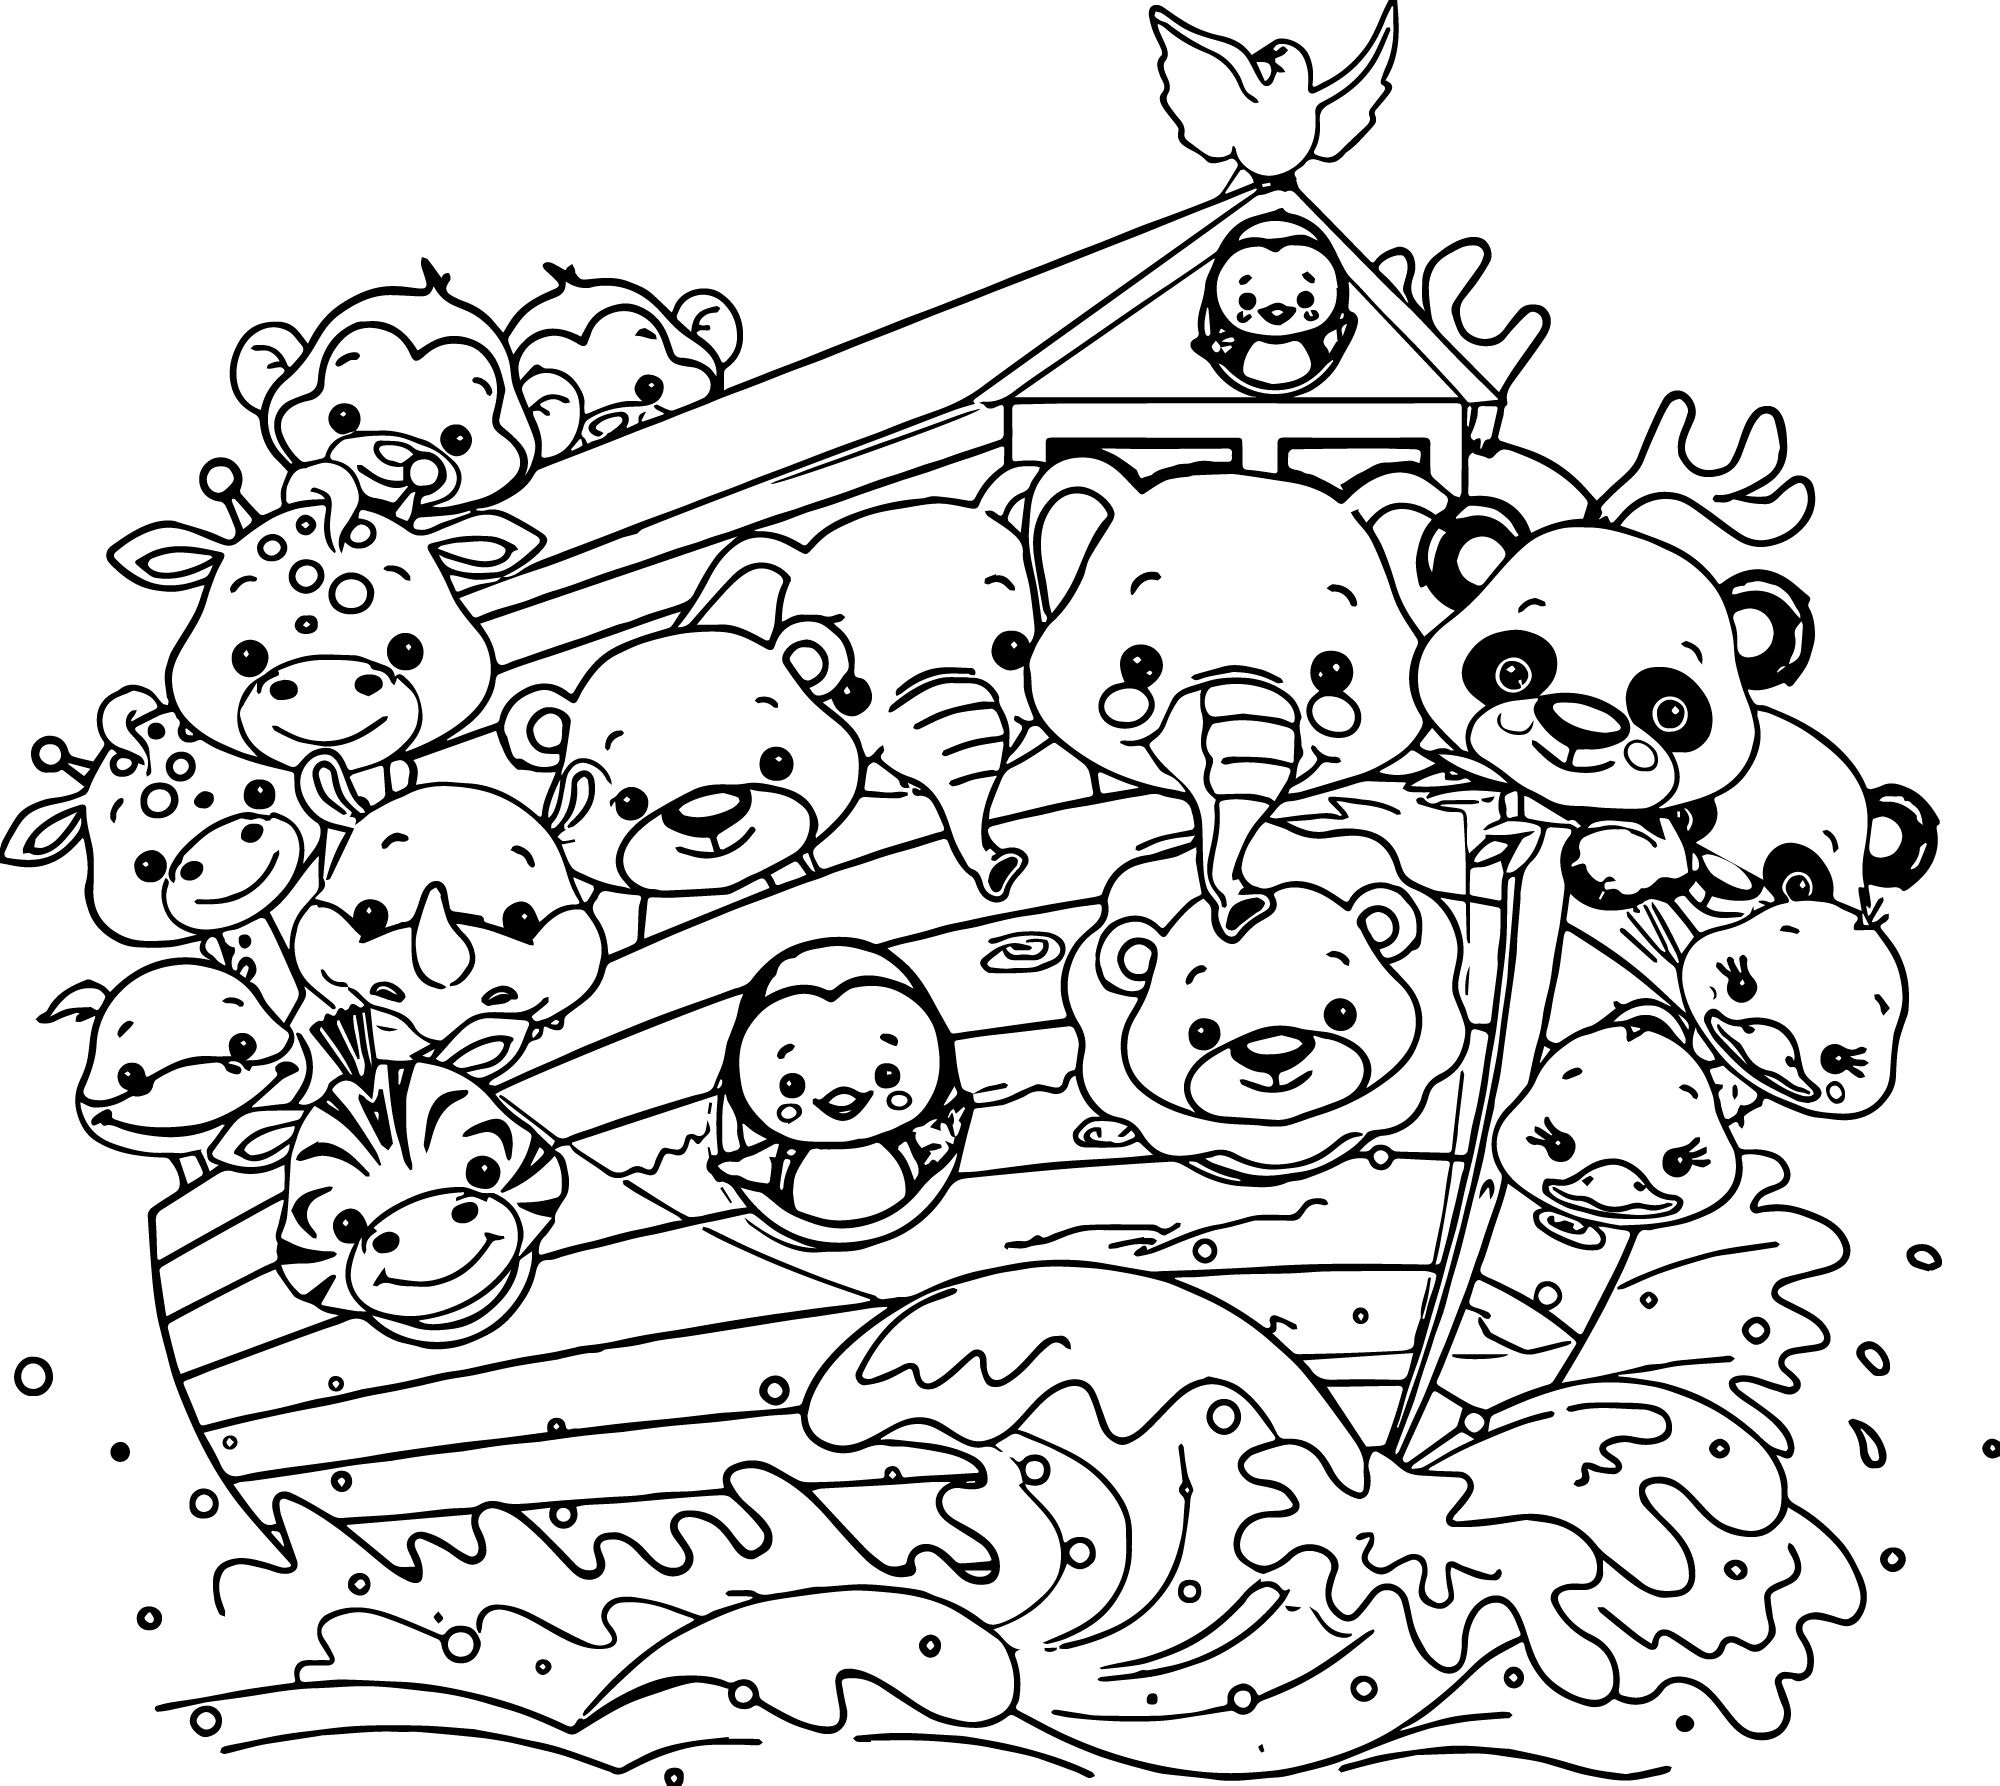 noah's ark coloring page five